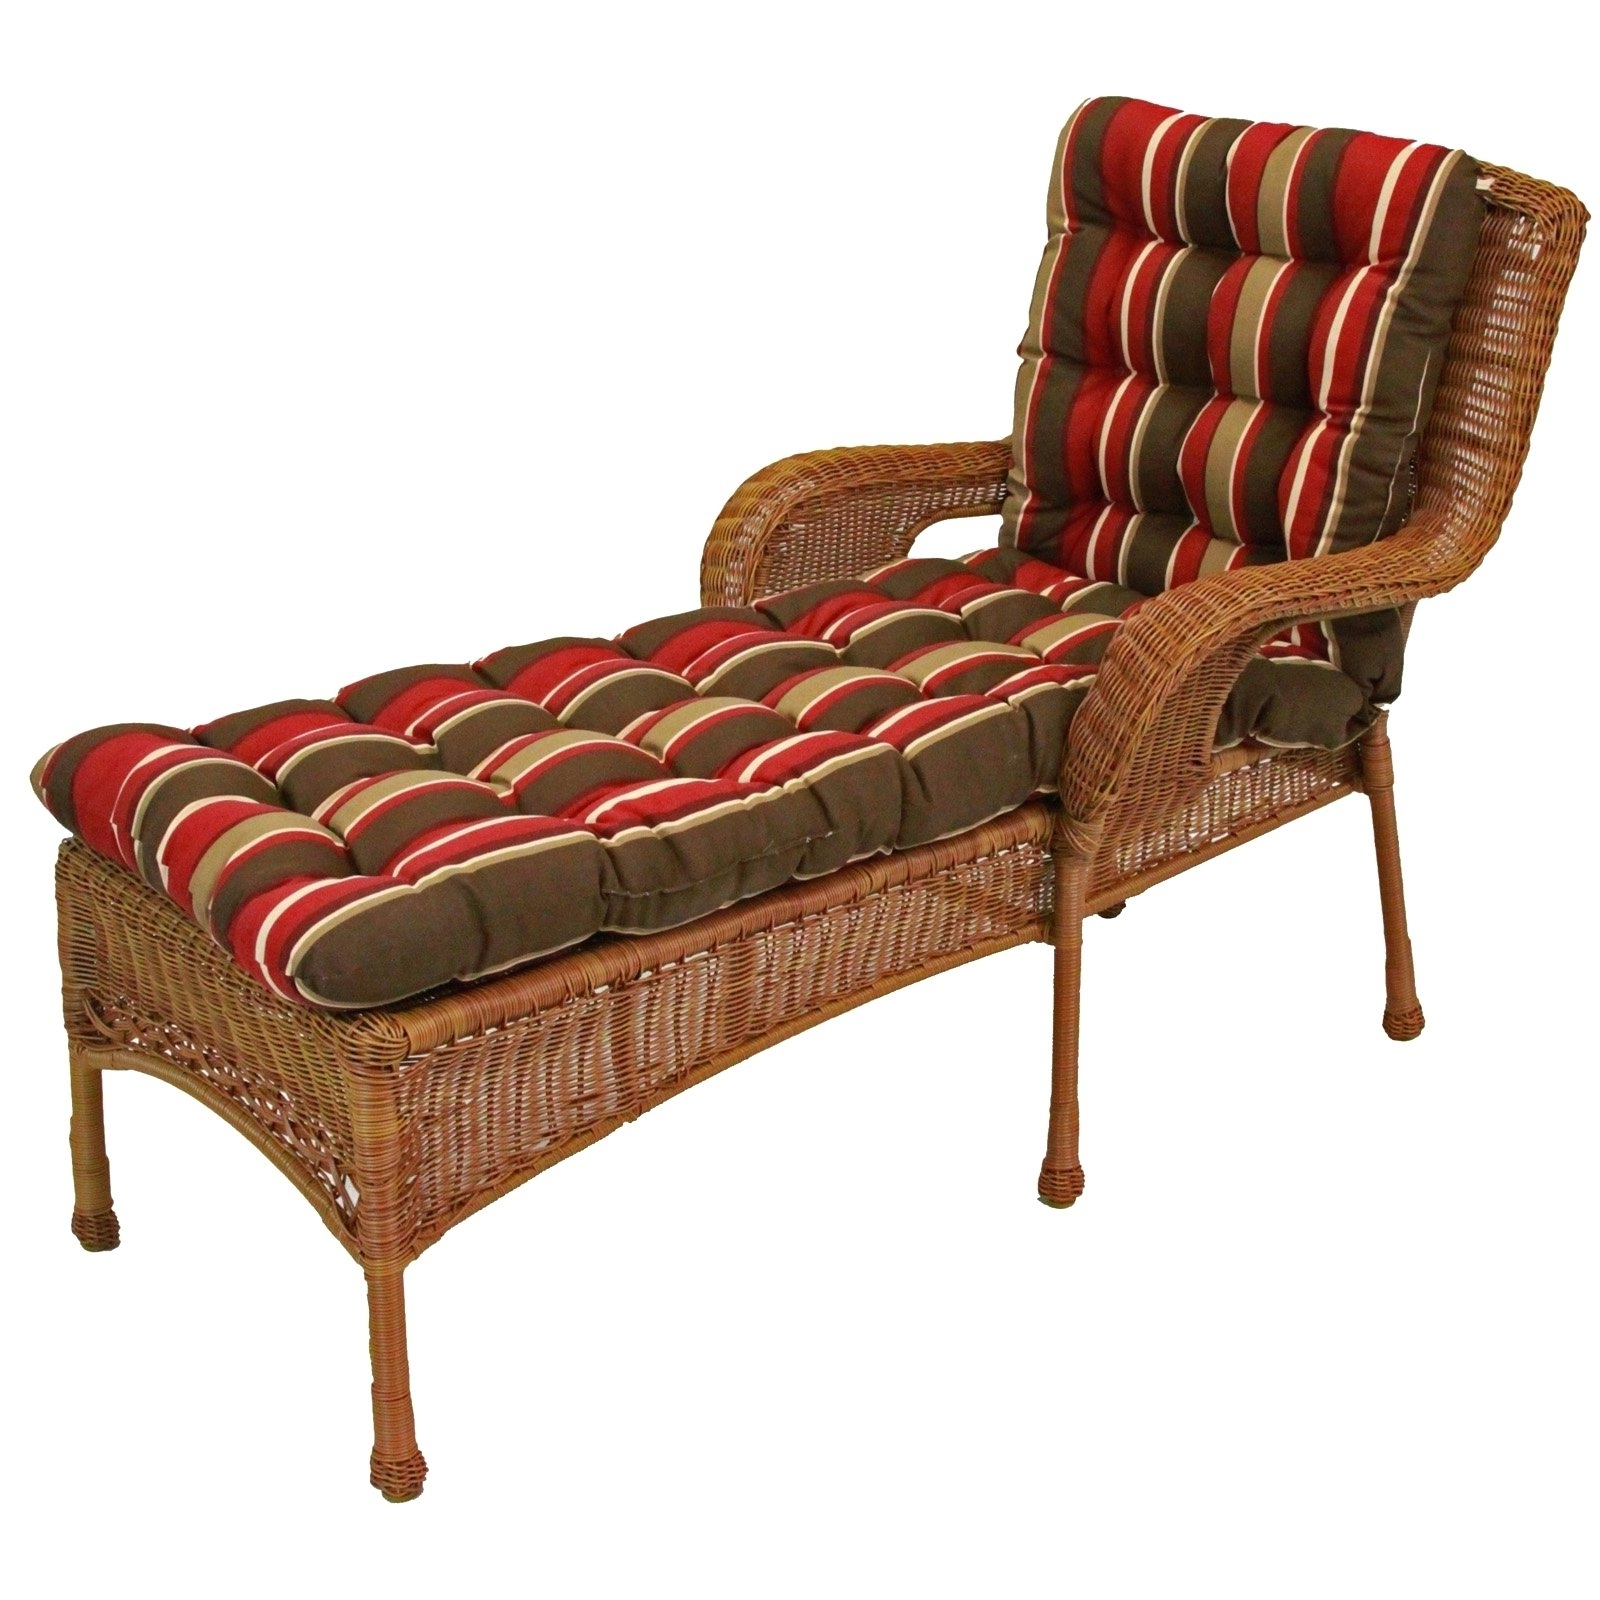 View Photos Of Keter Chaise Lounges Showing 13 15